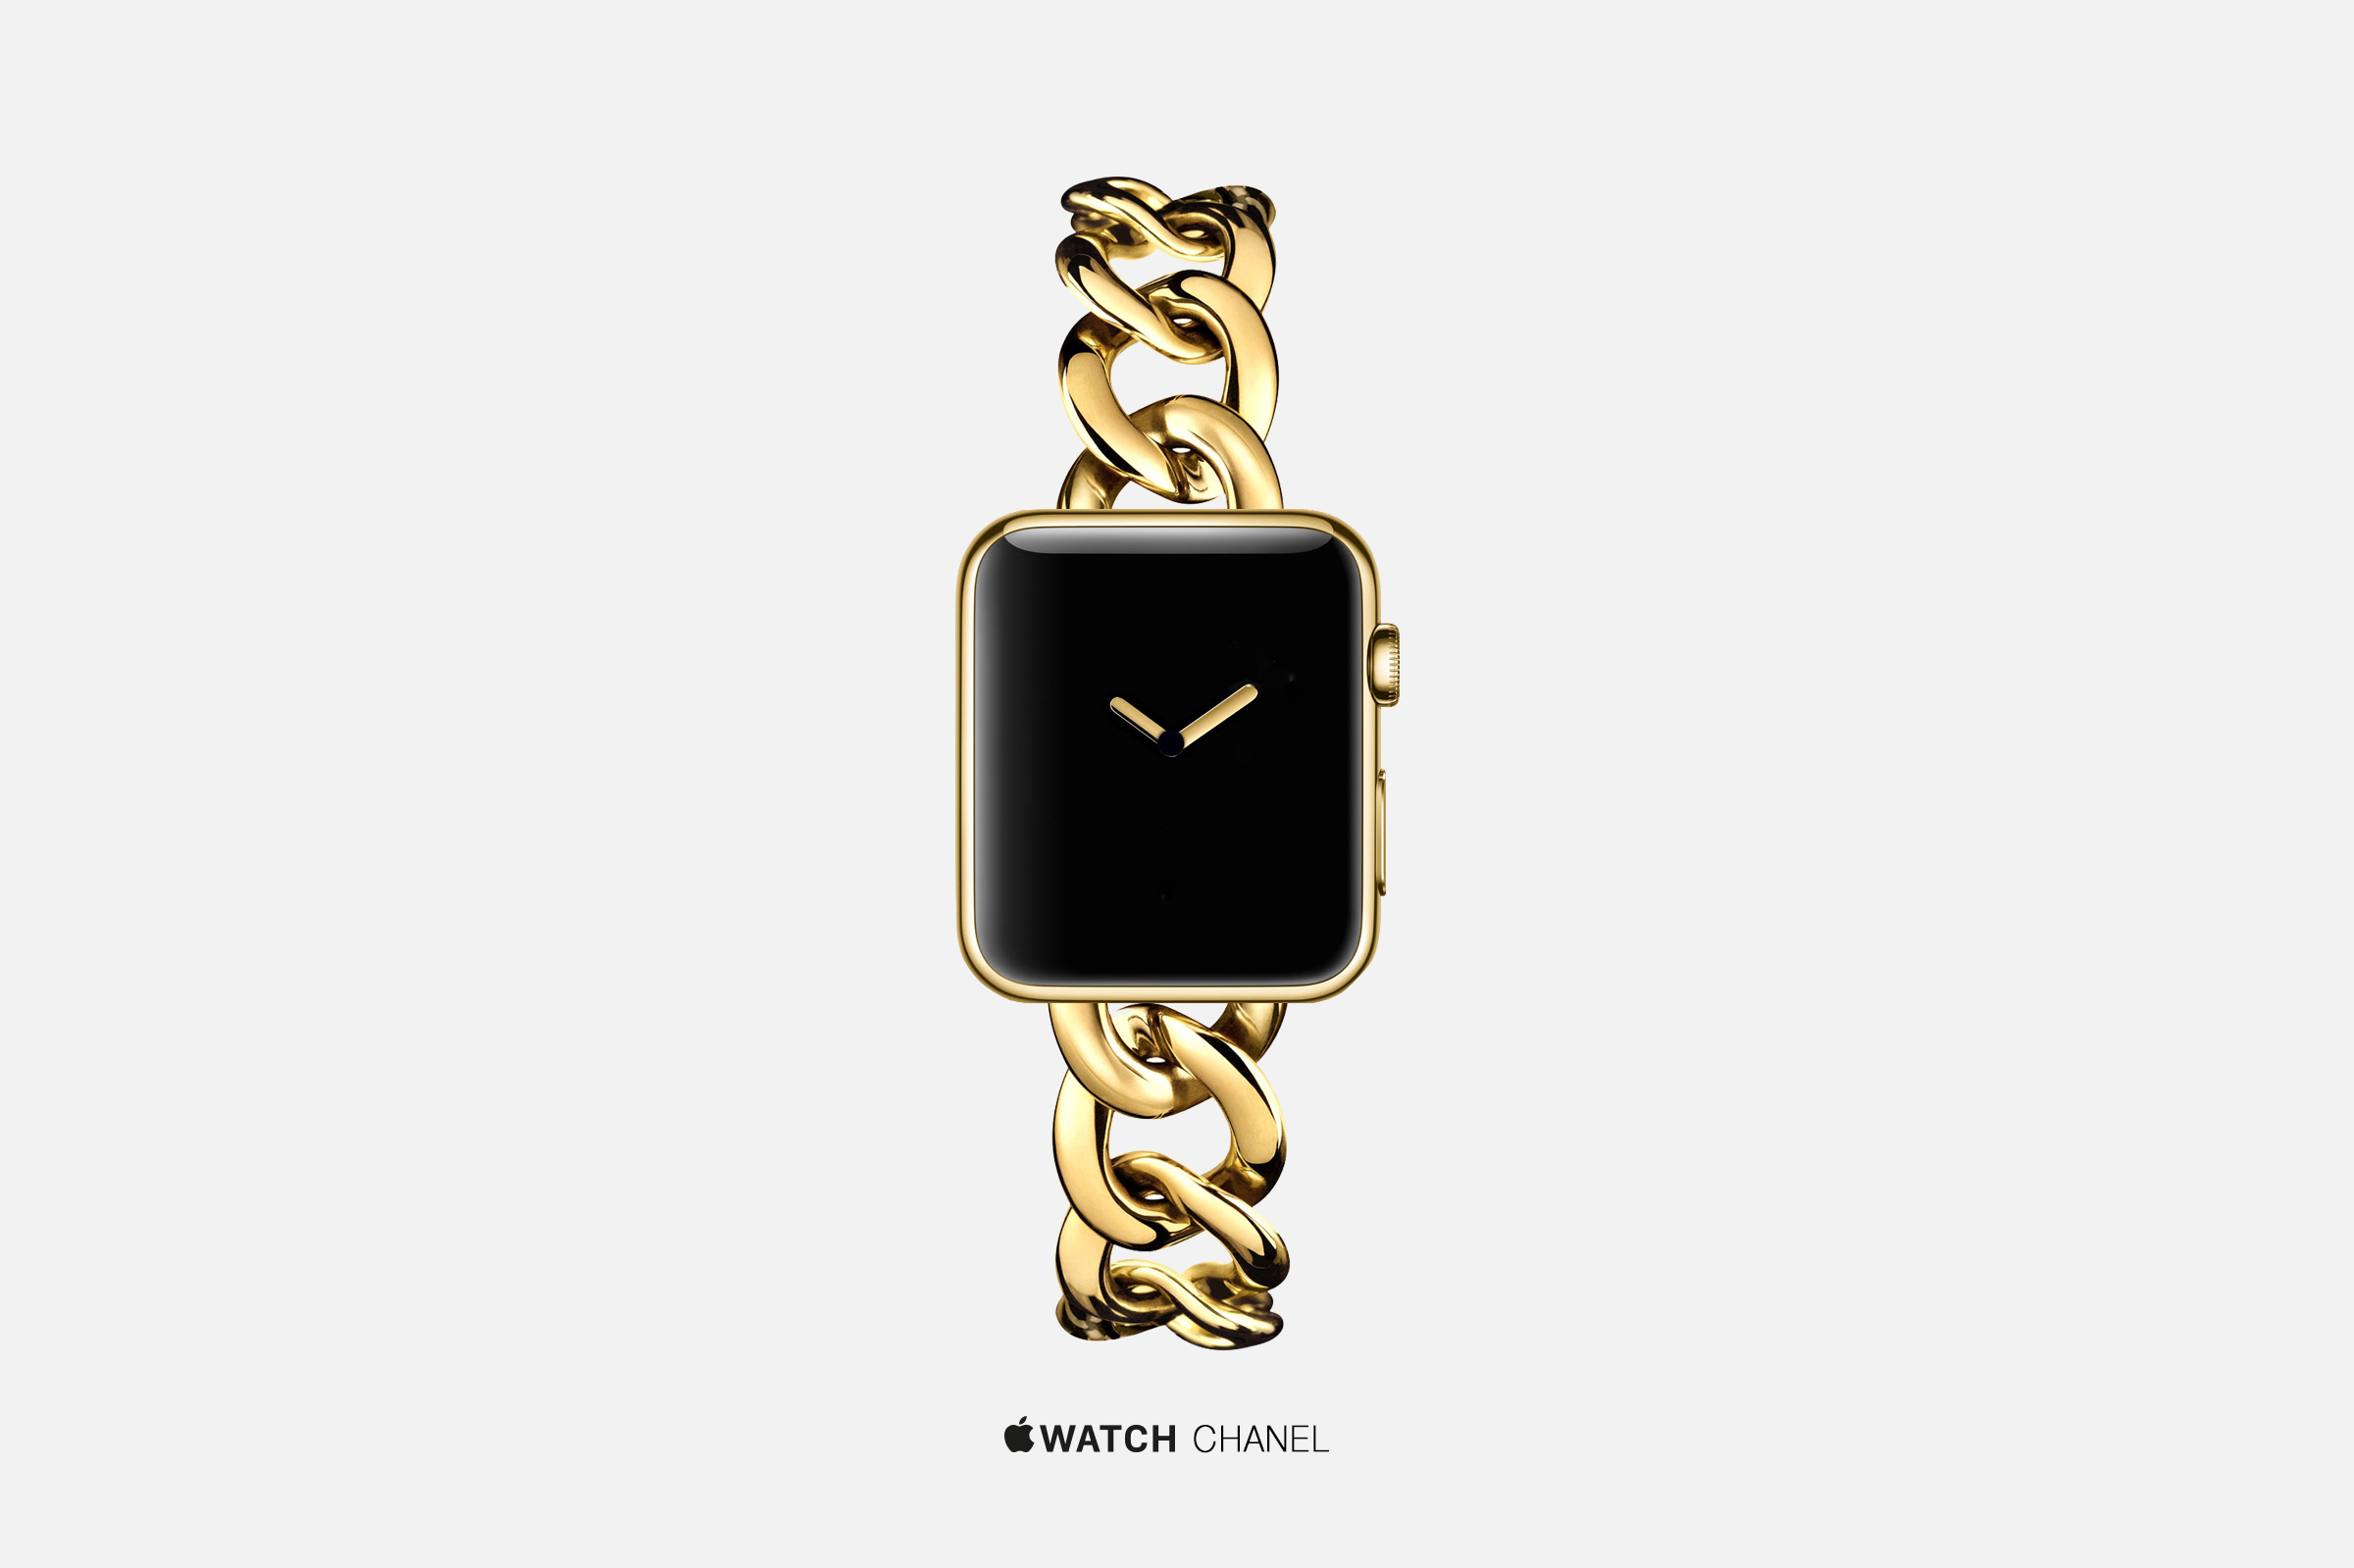 An artist's concept of an Apple Watch by Chanel.